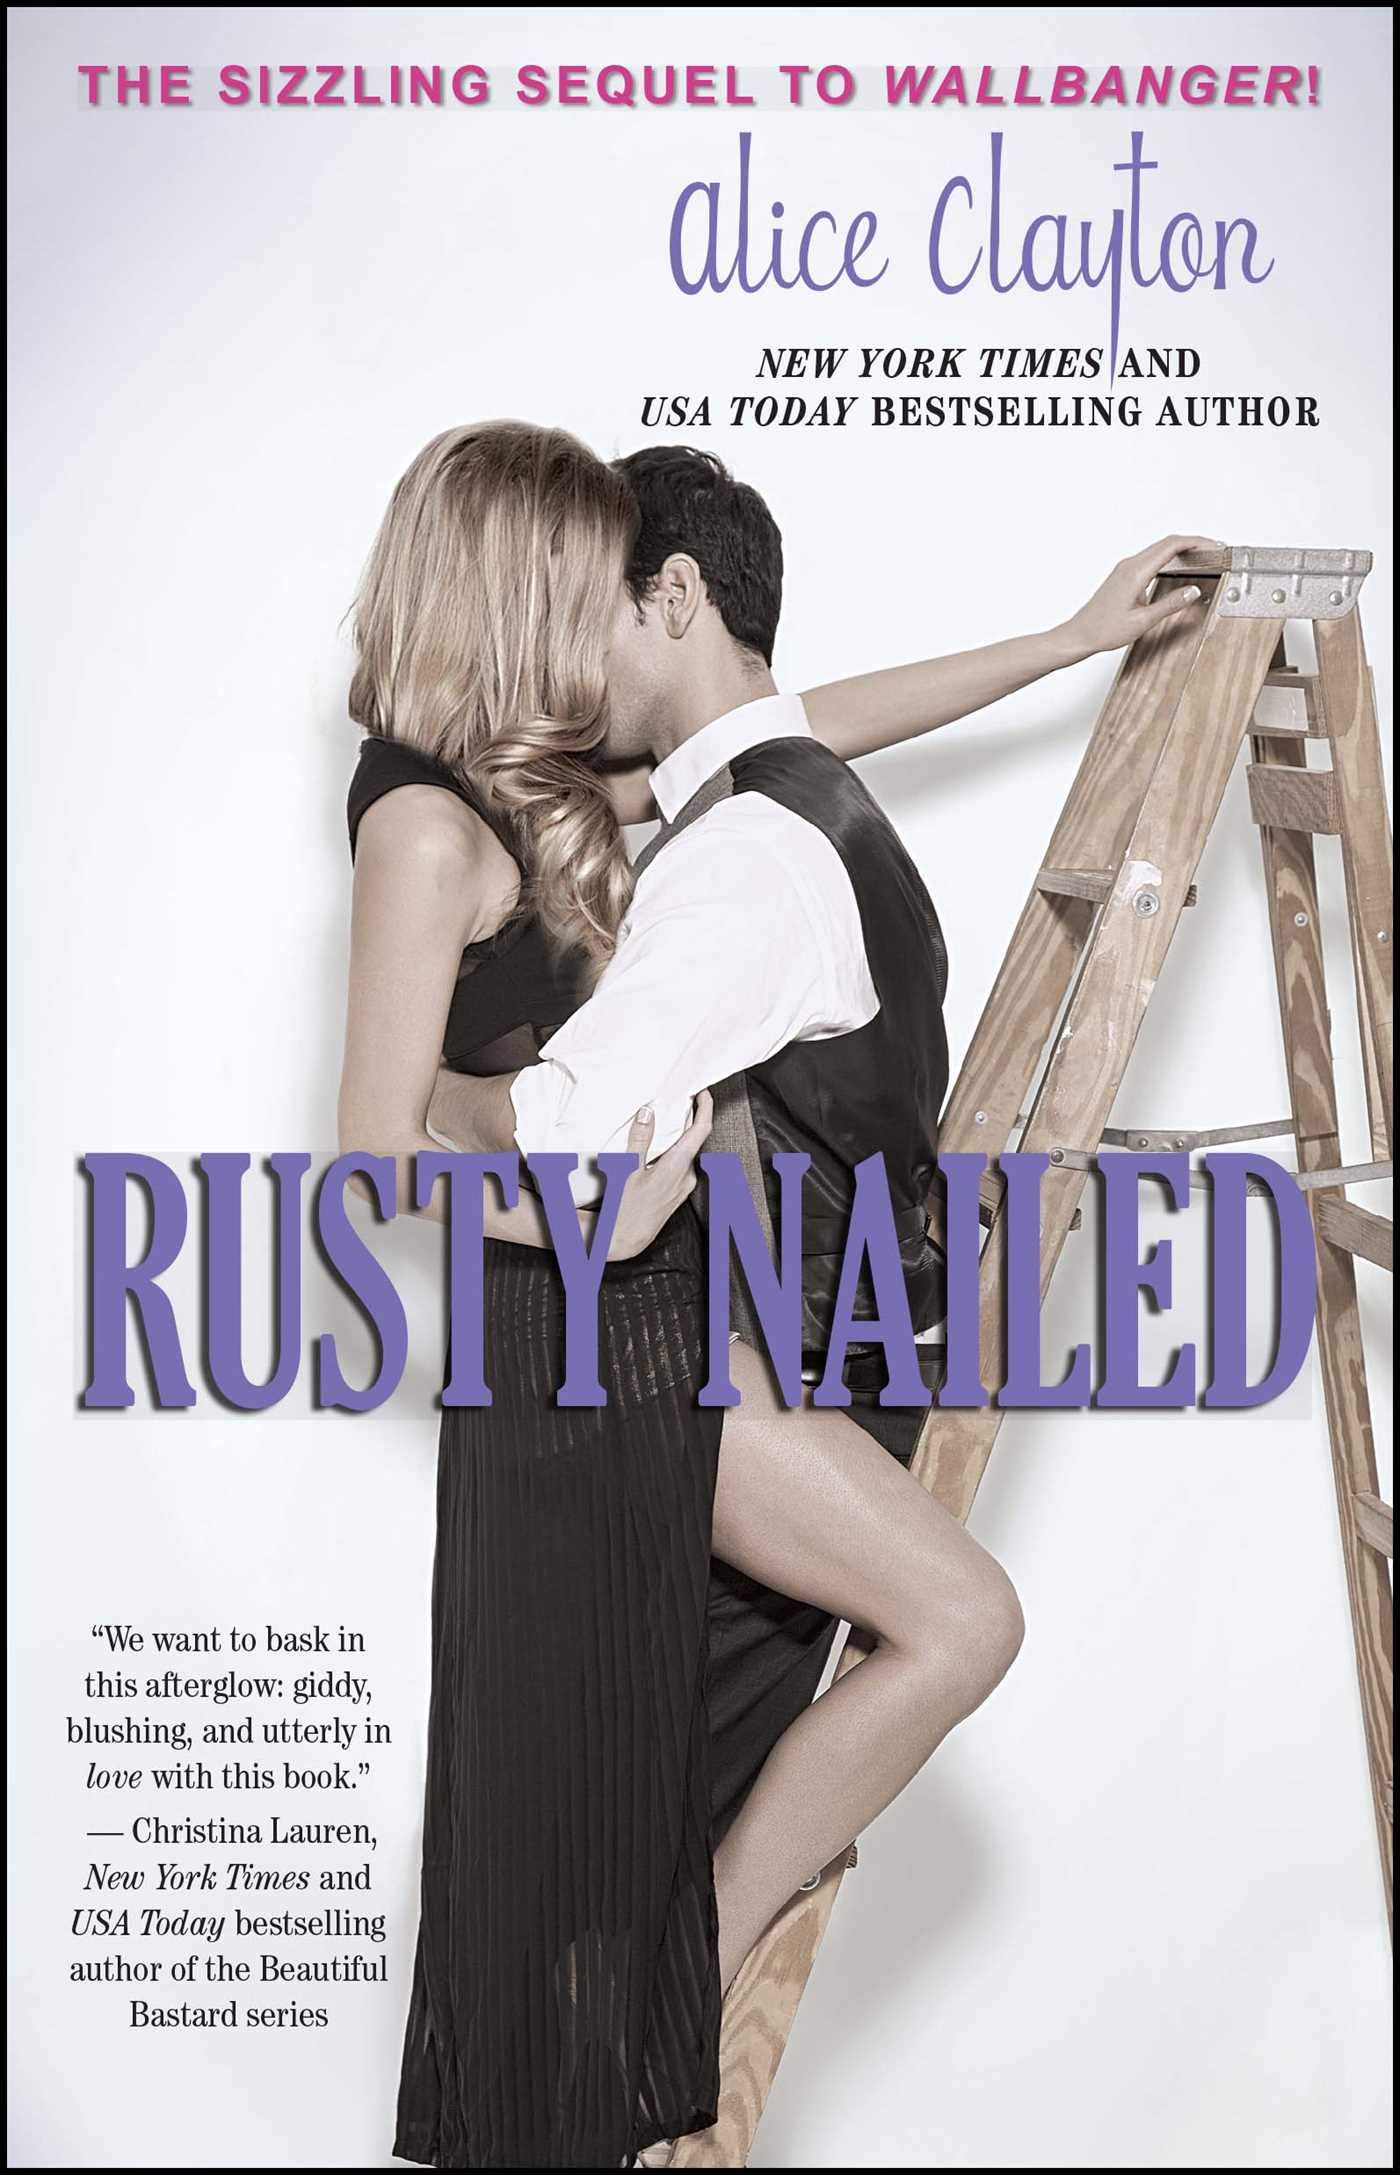 Rusty nailed 9781476766669 hr